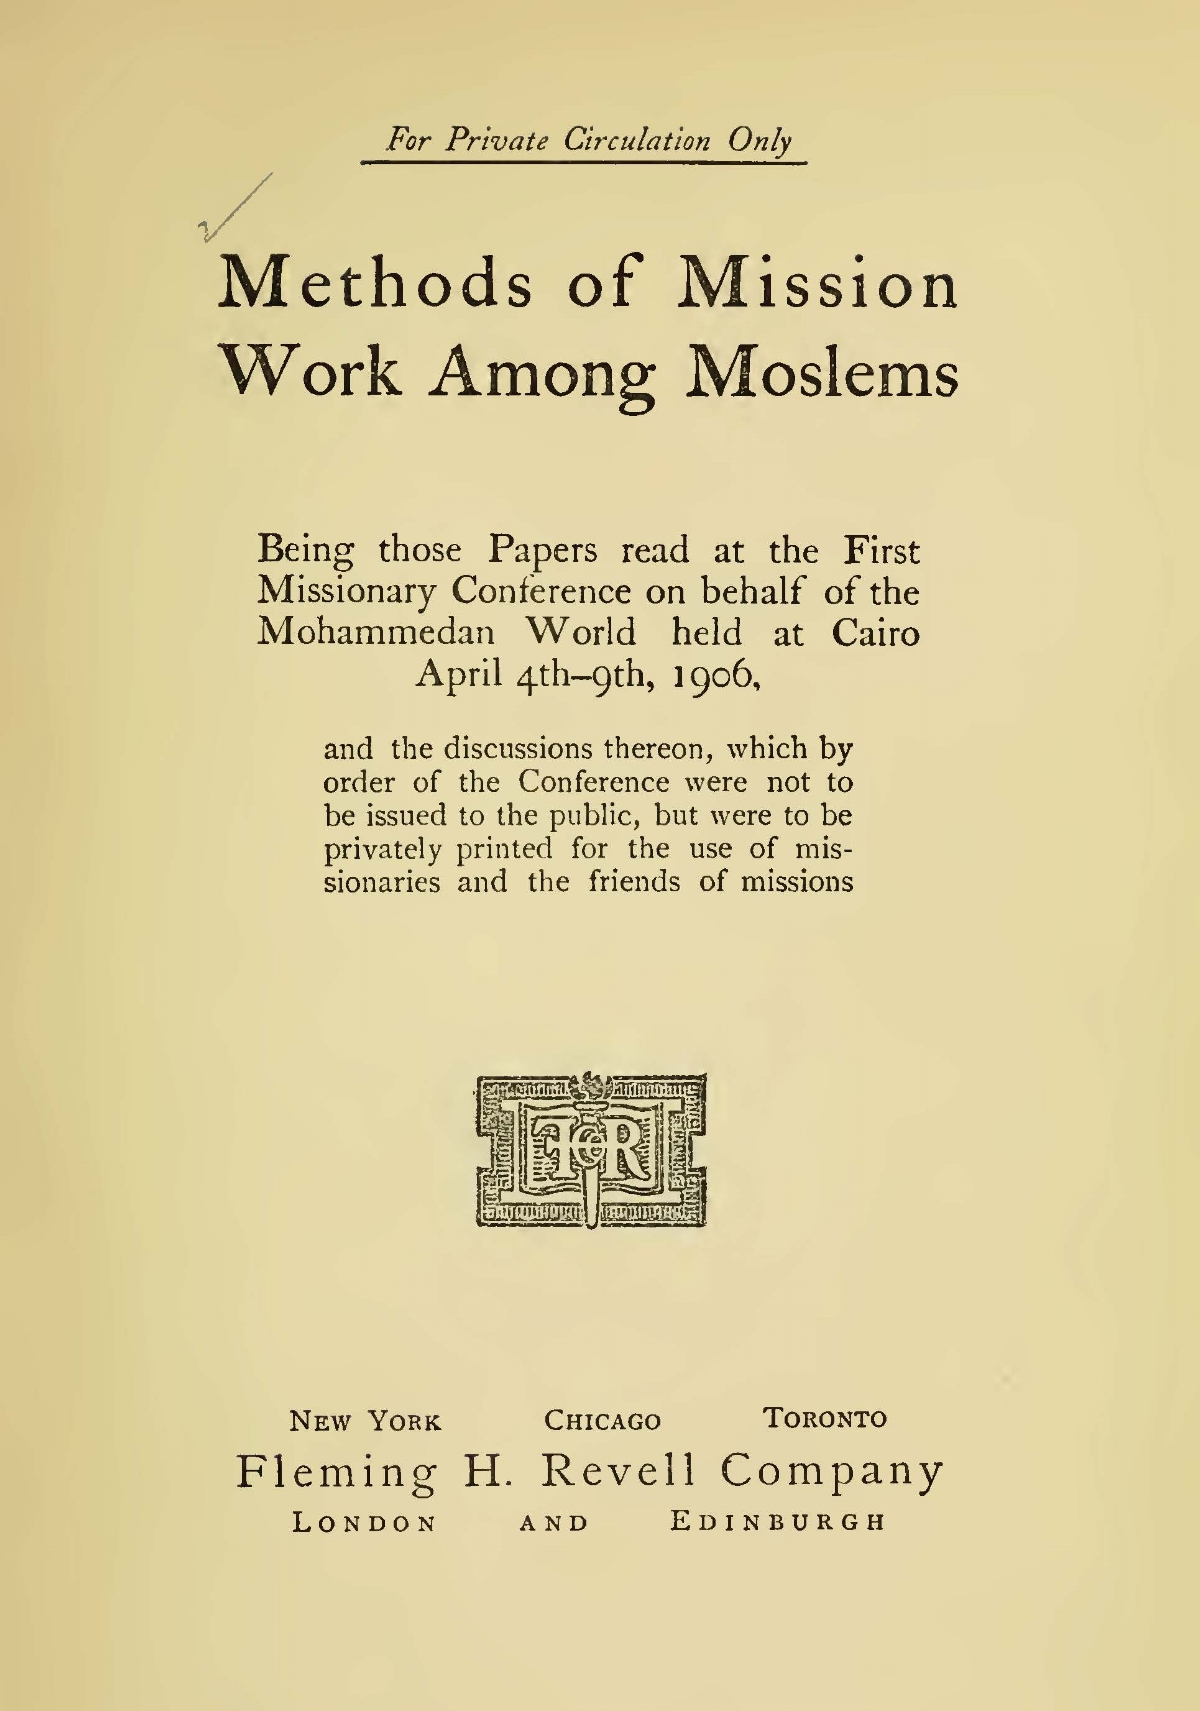 Wherry, Elwood Morris, Methods of Mission Work Among Moslems Title Page.jpg